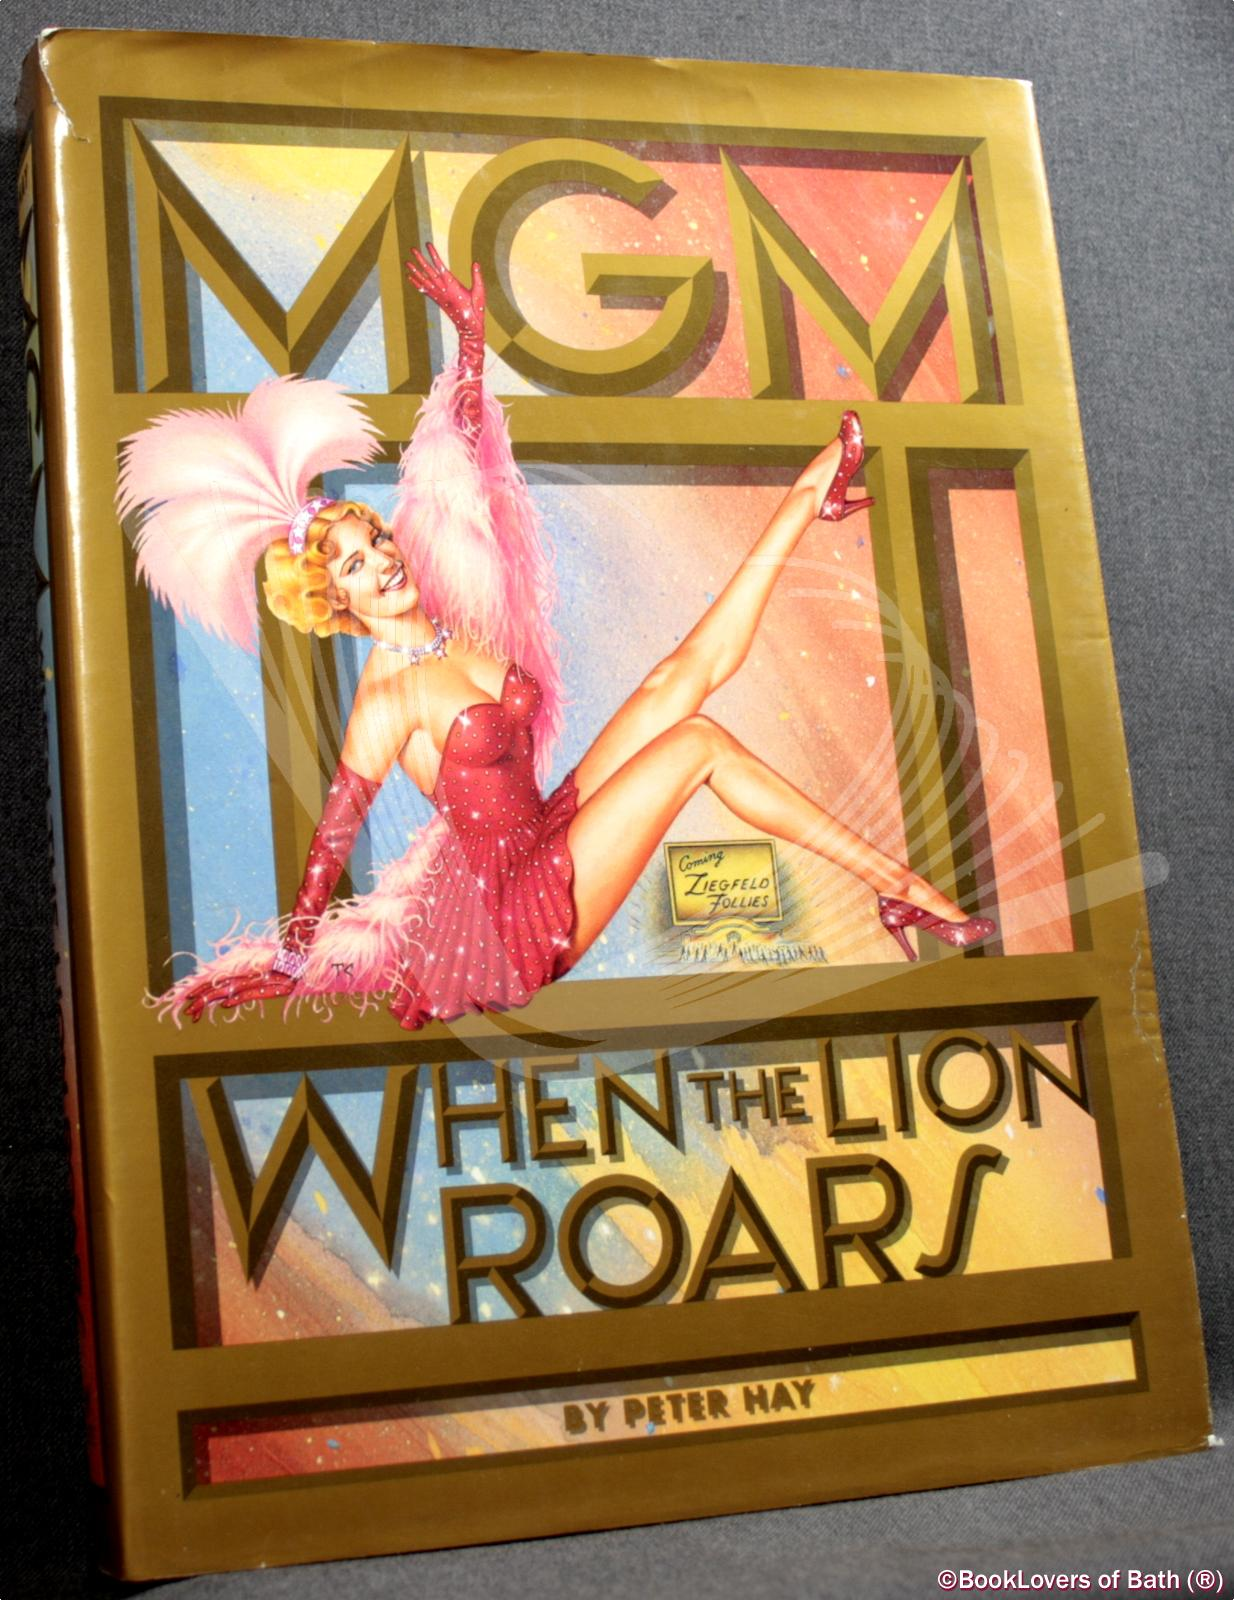 MGM: When the Lion Roars - Peter Hay